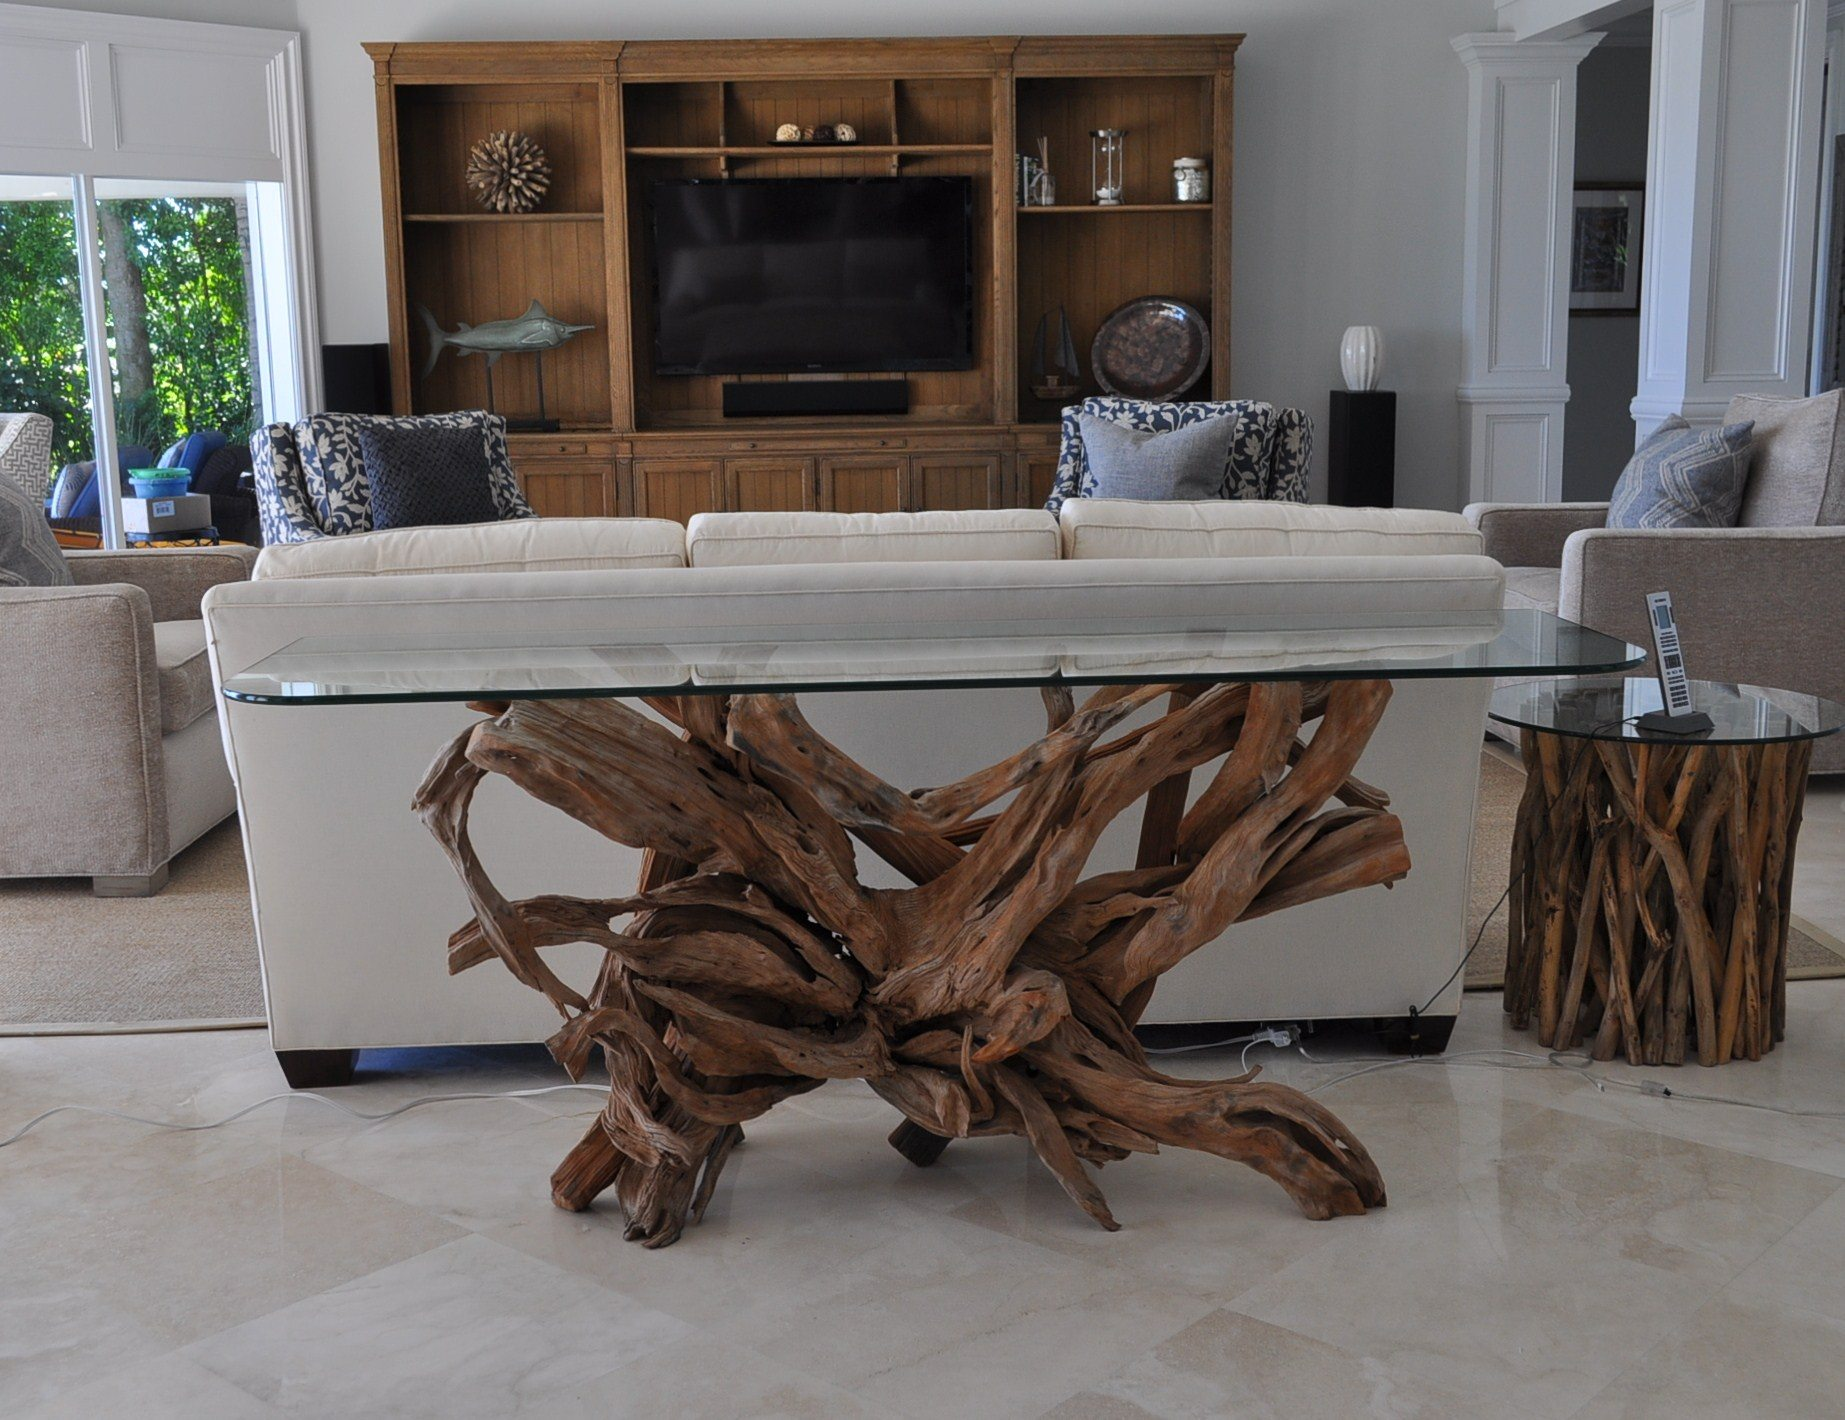 Another driftwood table delivery to S Florida